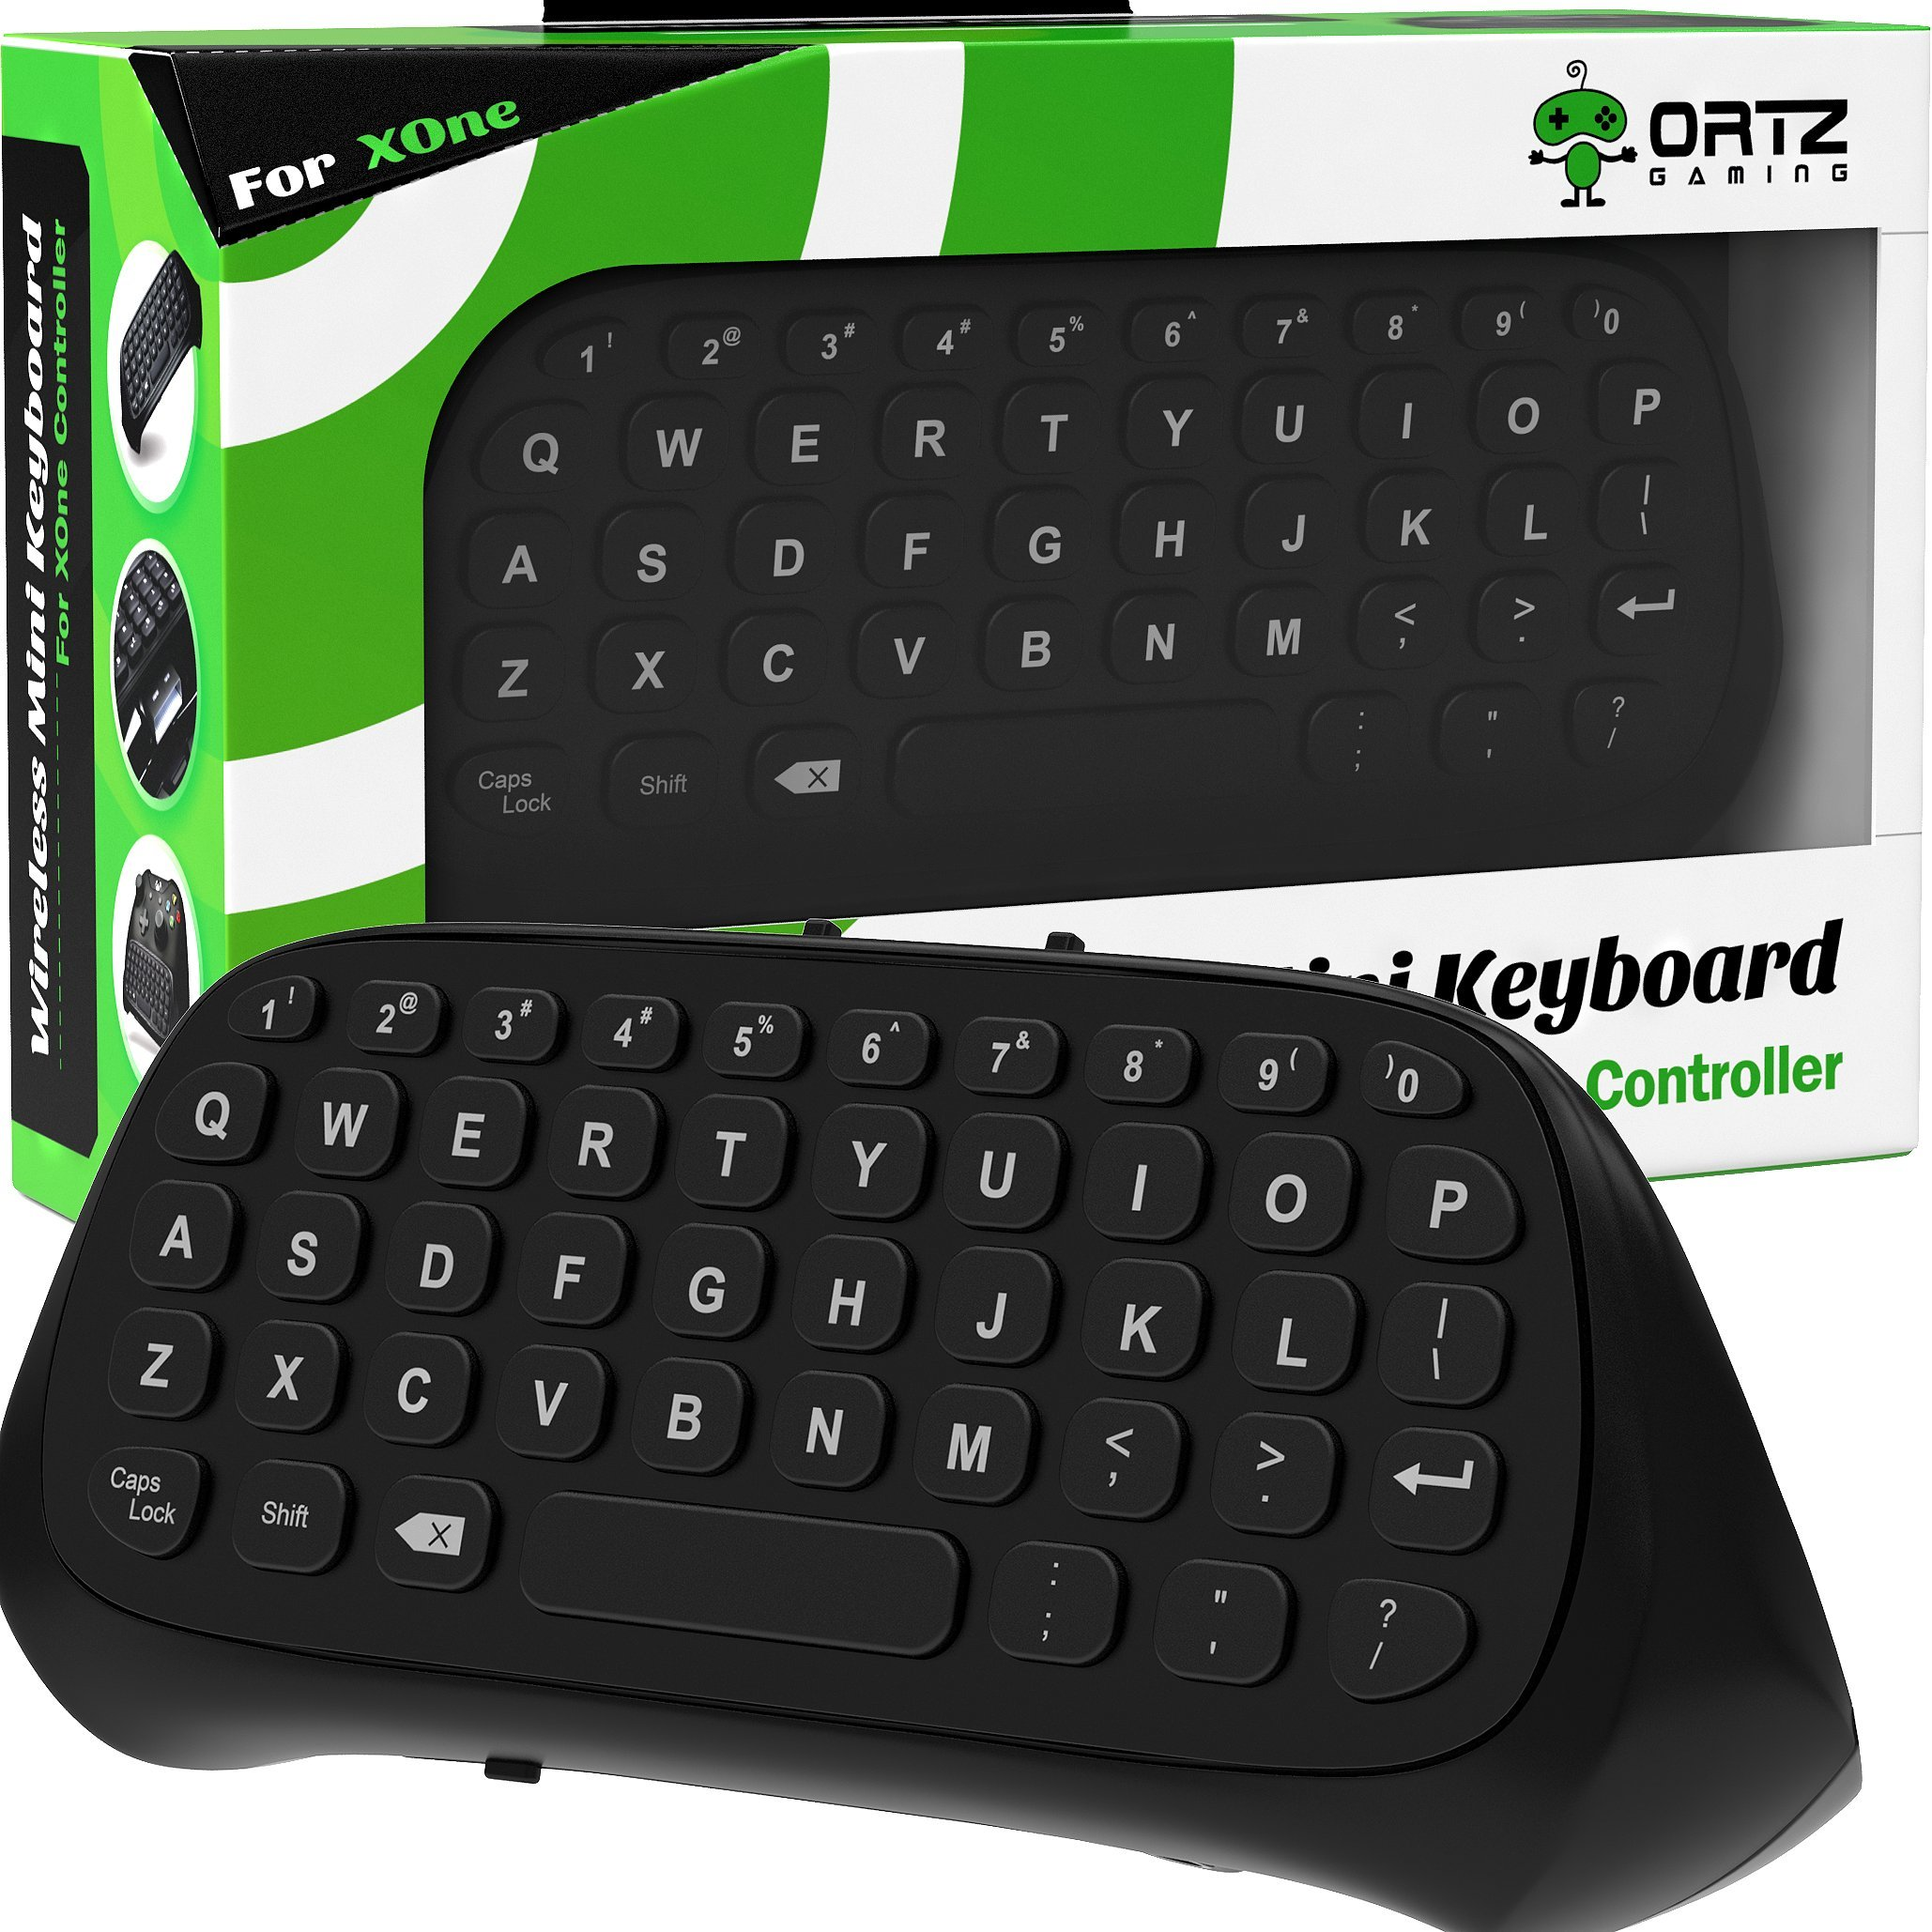 Ortz Xbox One Chatpad Keyboard KeyPad [with Headset/Audio Jack] Best for Wireless Chat - Built in USB Receiver for Xbox One Game Controller - Easy Sync with your Controller